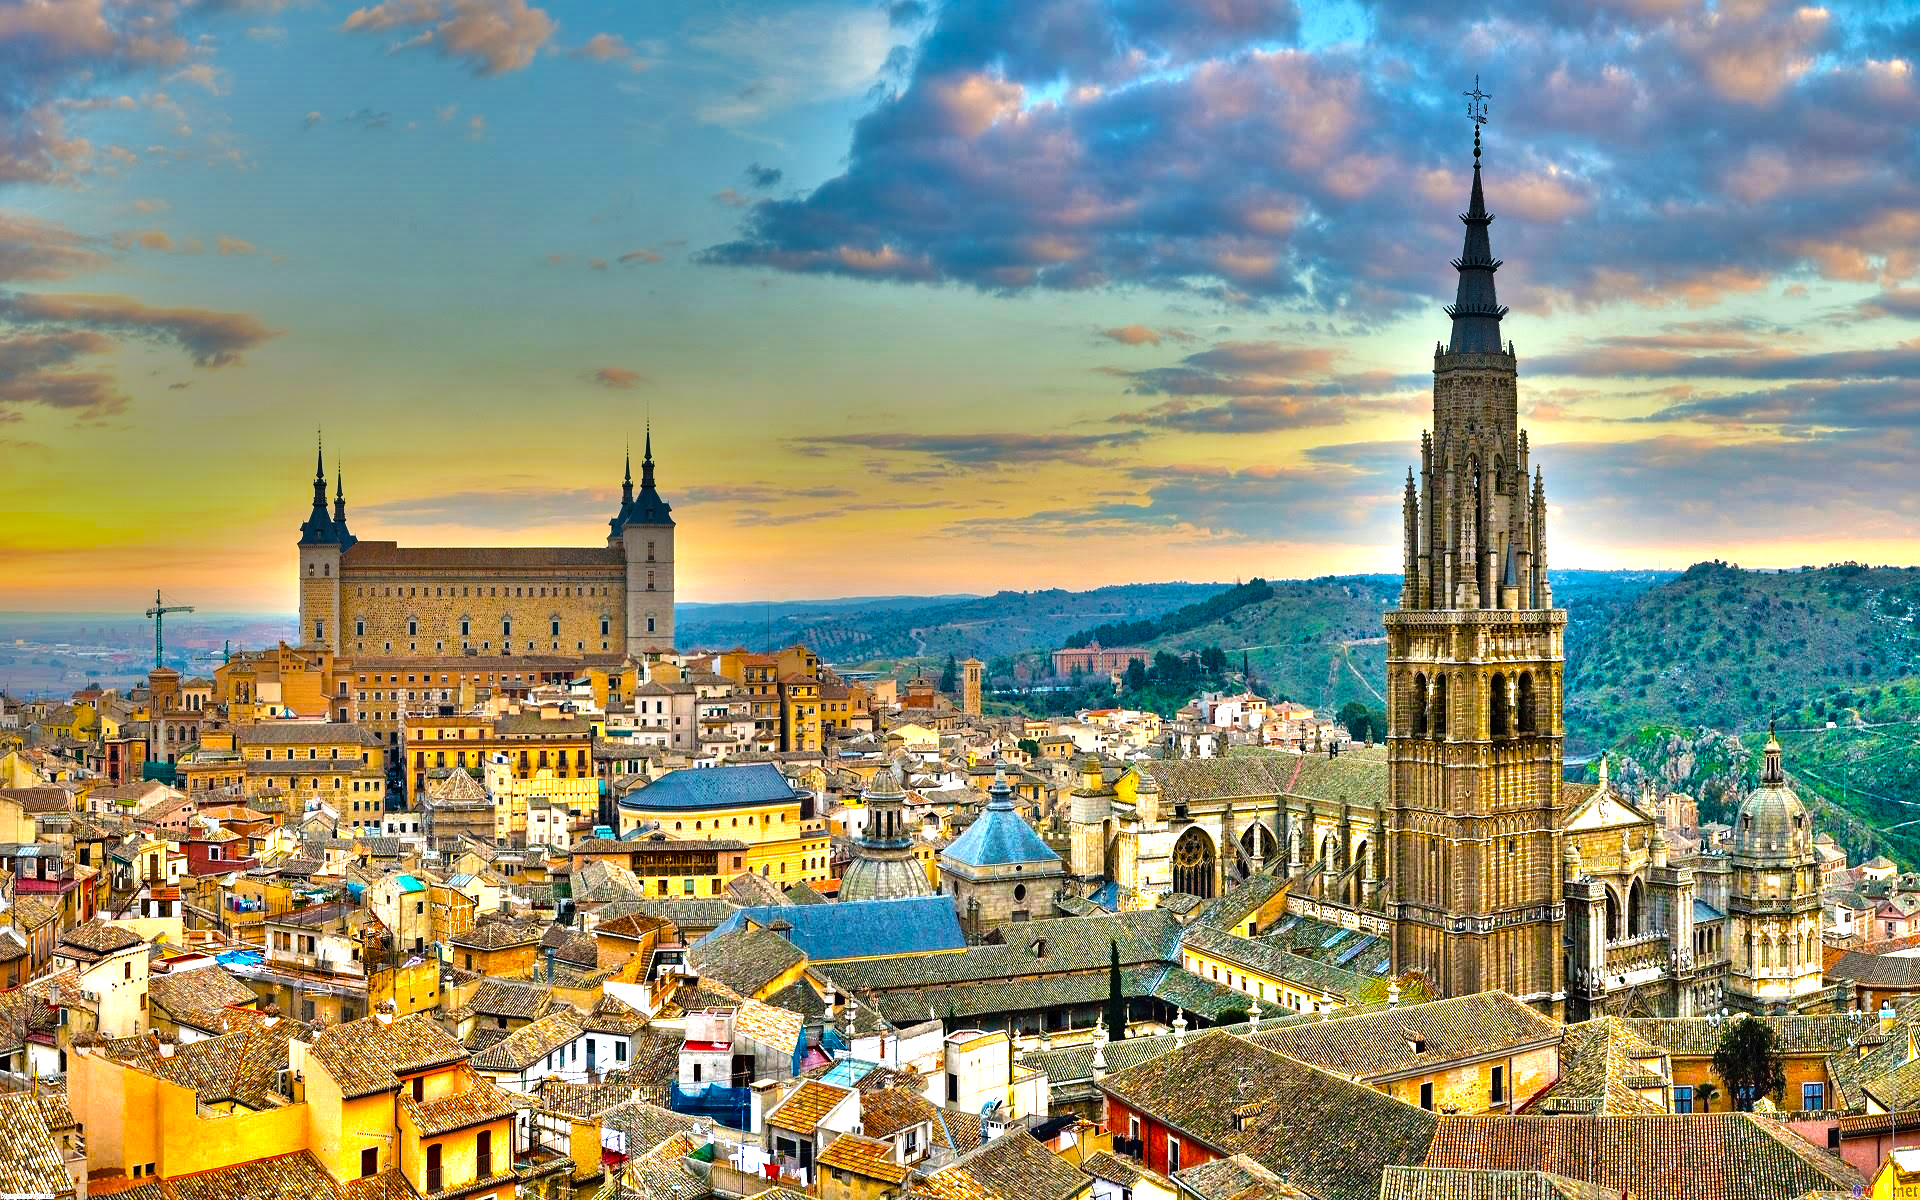 Spain Full Hd Wallpaper And Background Image: Toledo, Spain HD Wallpaper